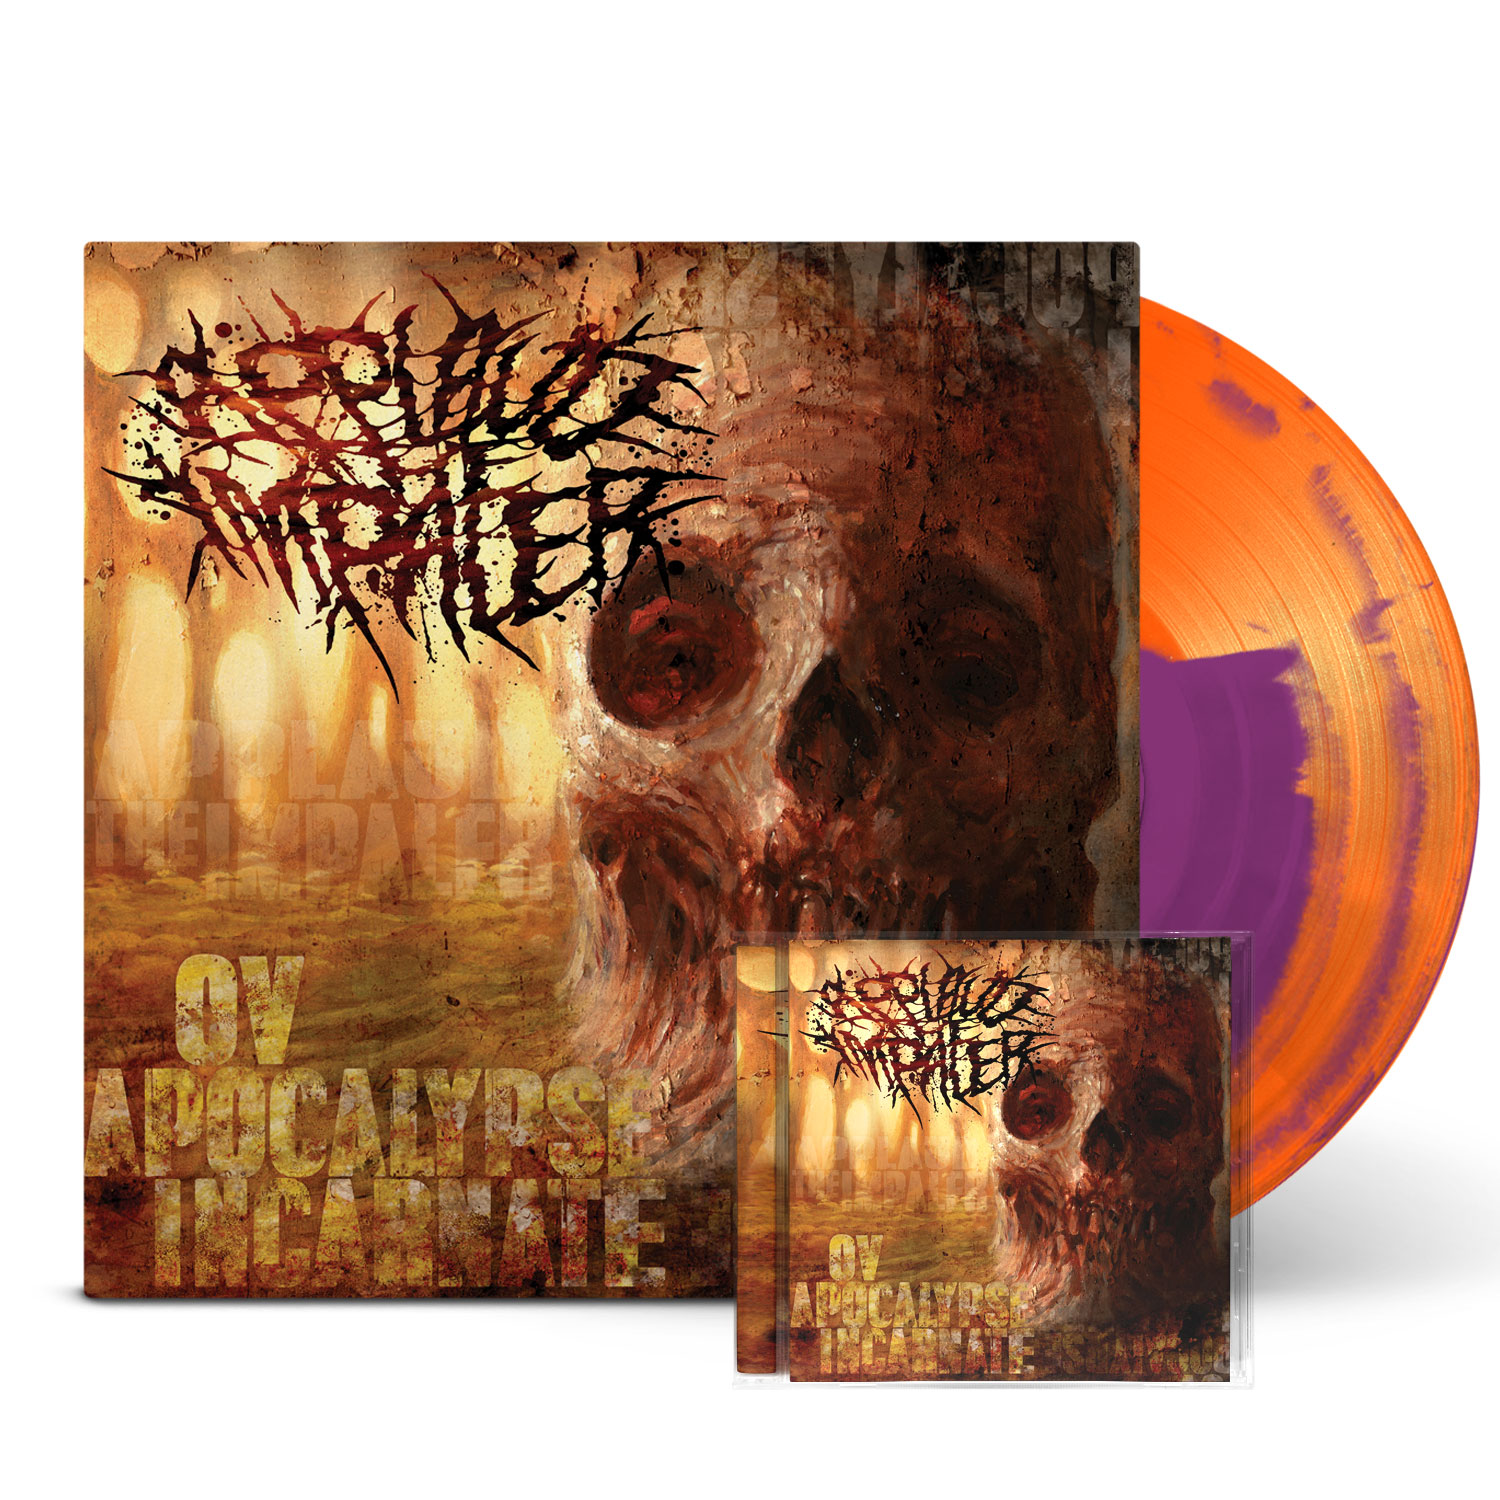 Ov Apocalypse Incarnate CD + LP Bundle